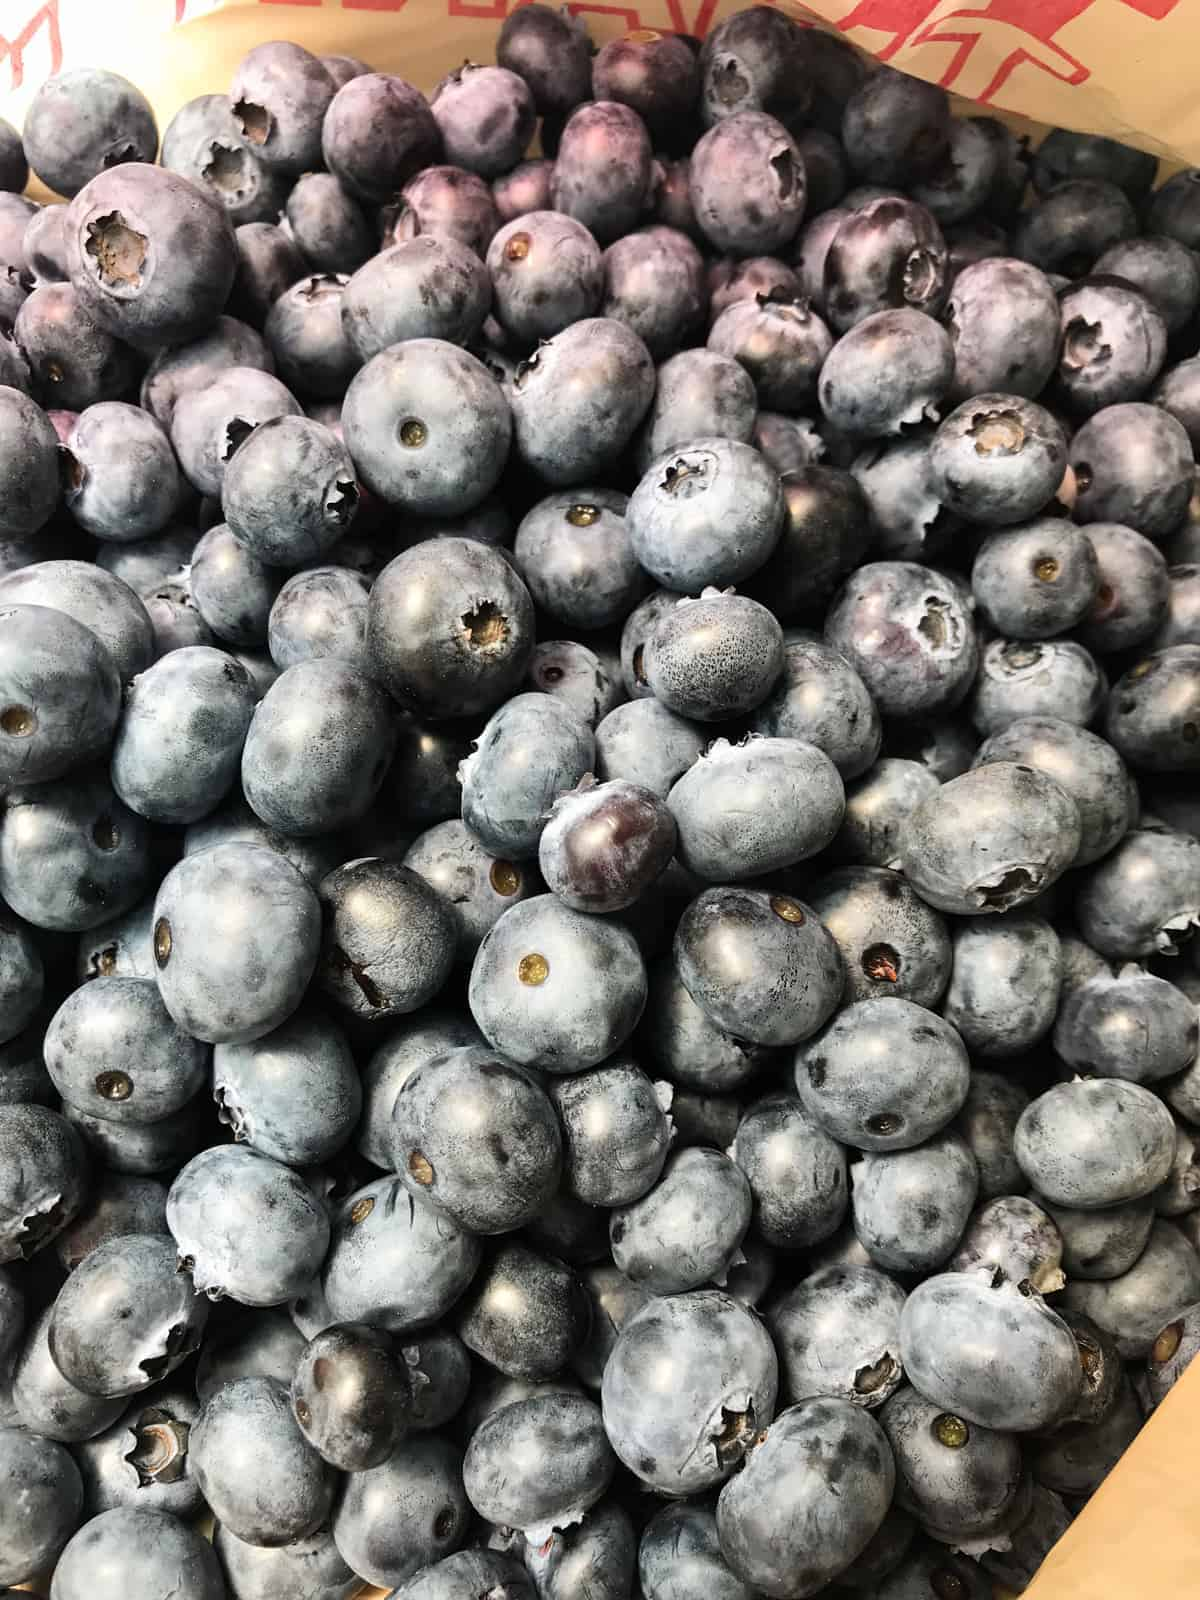 Harvey's Farm Pick Your Own Blueberries